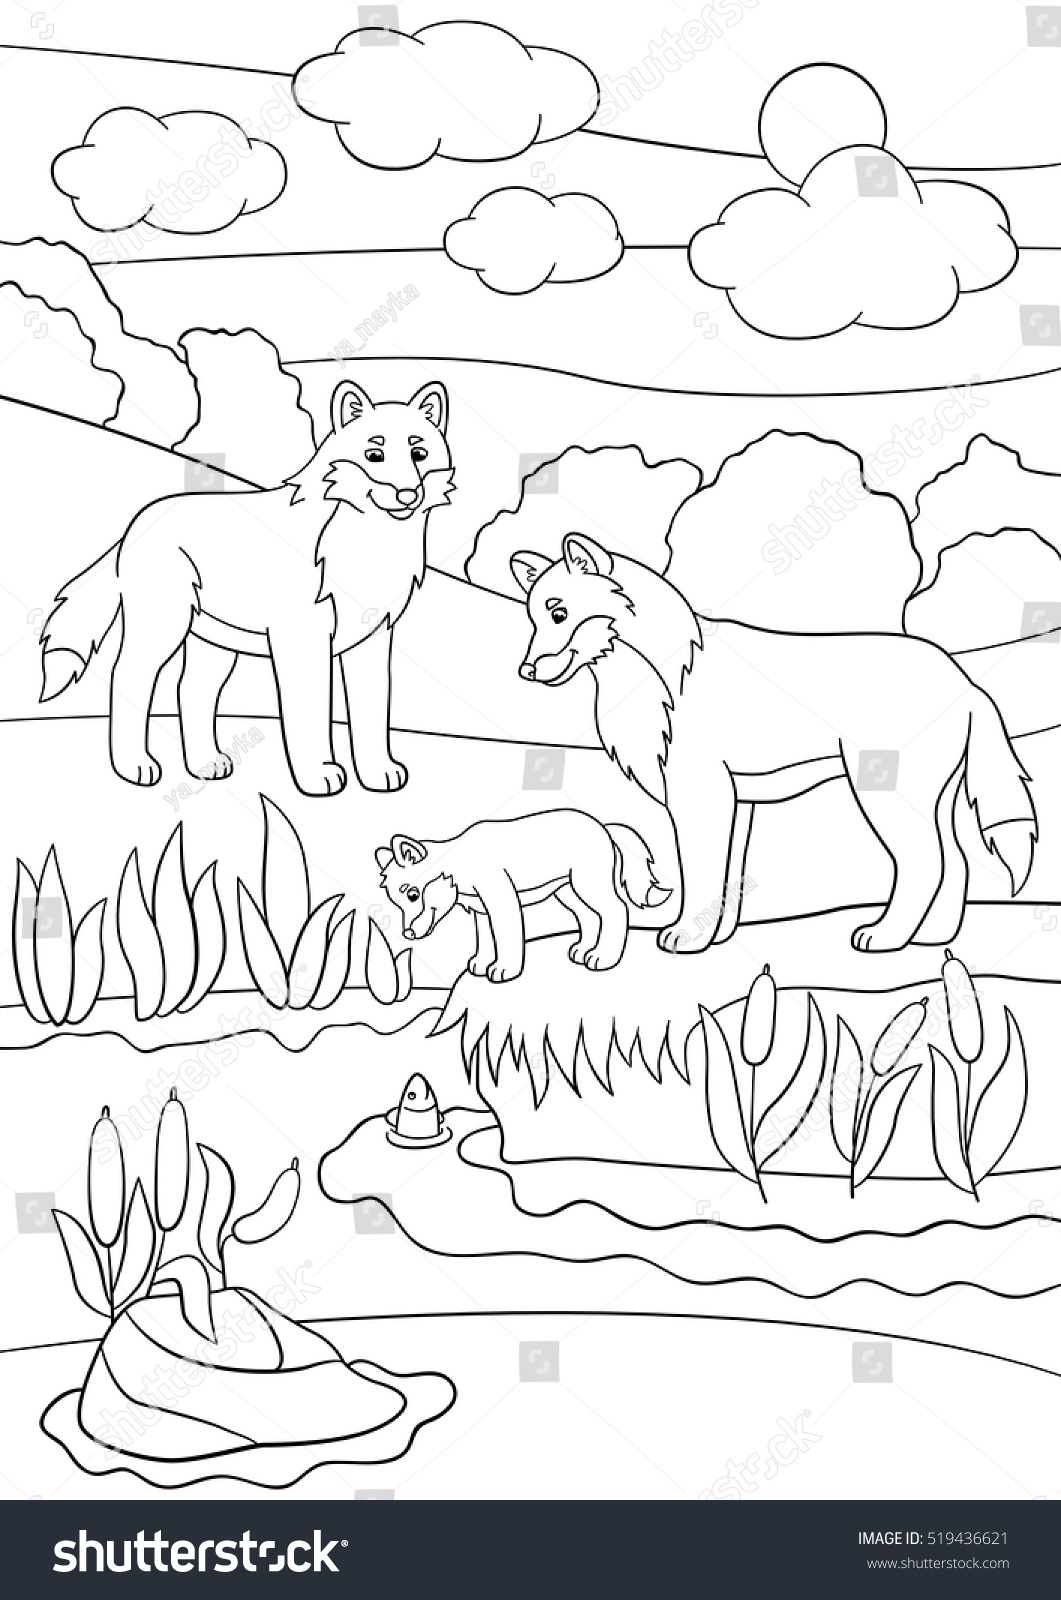 Coloring Pages Mother Father Wolves Look Stock Vector (Royalty Free ...